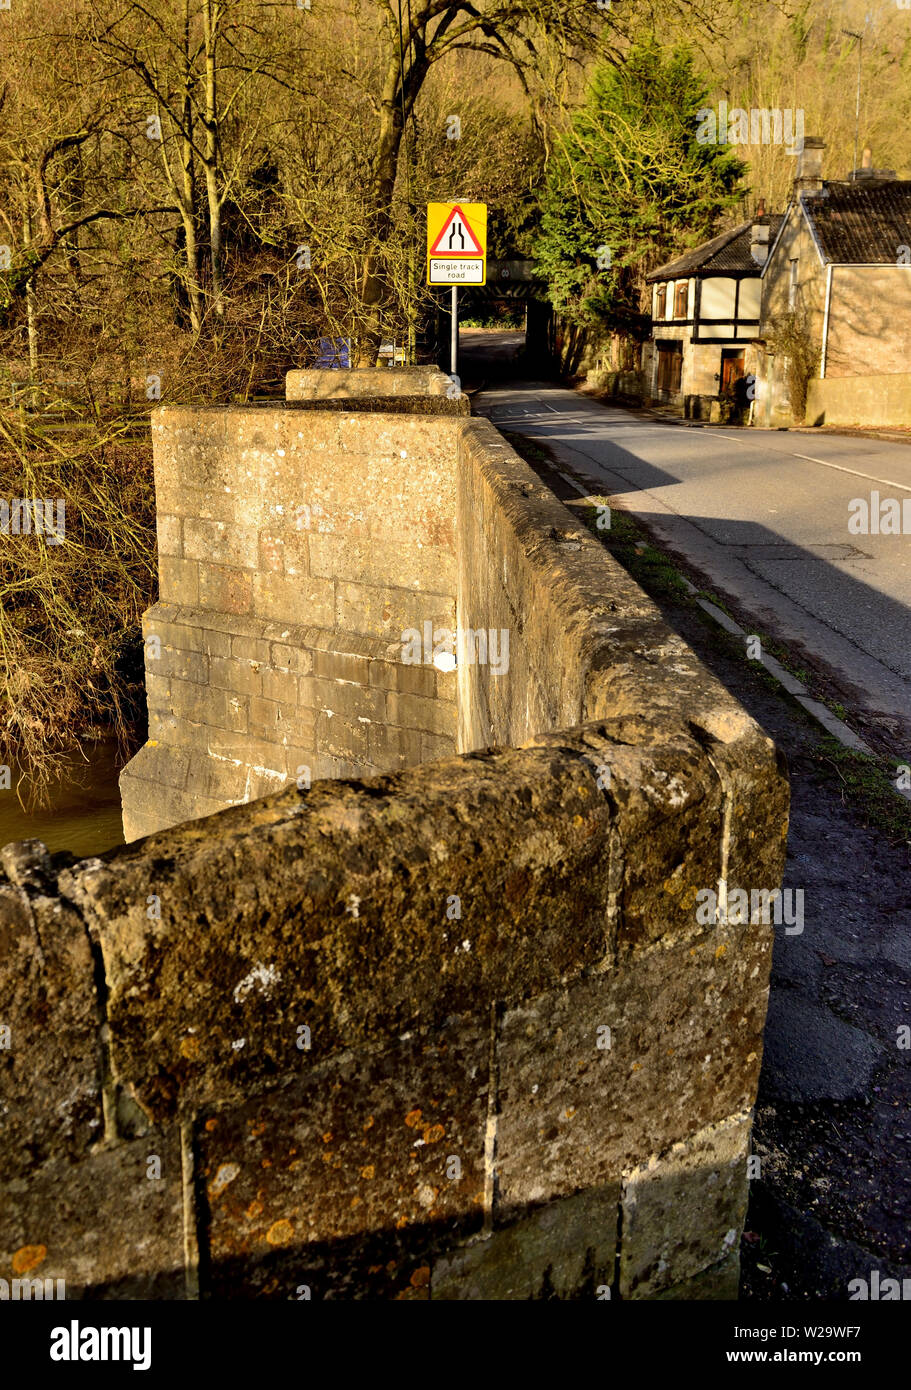 Pedestrian refuges on Stokeford Bridge over the river Avon at Limpley Stoke. - Stock Image